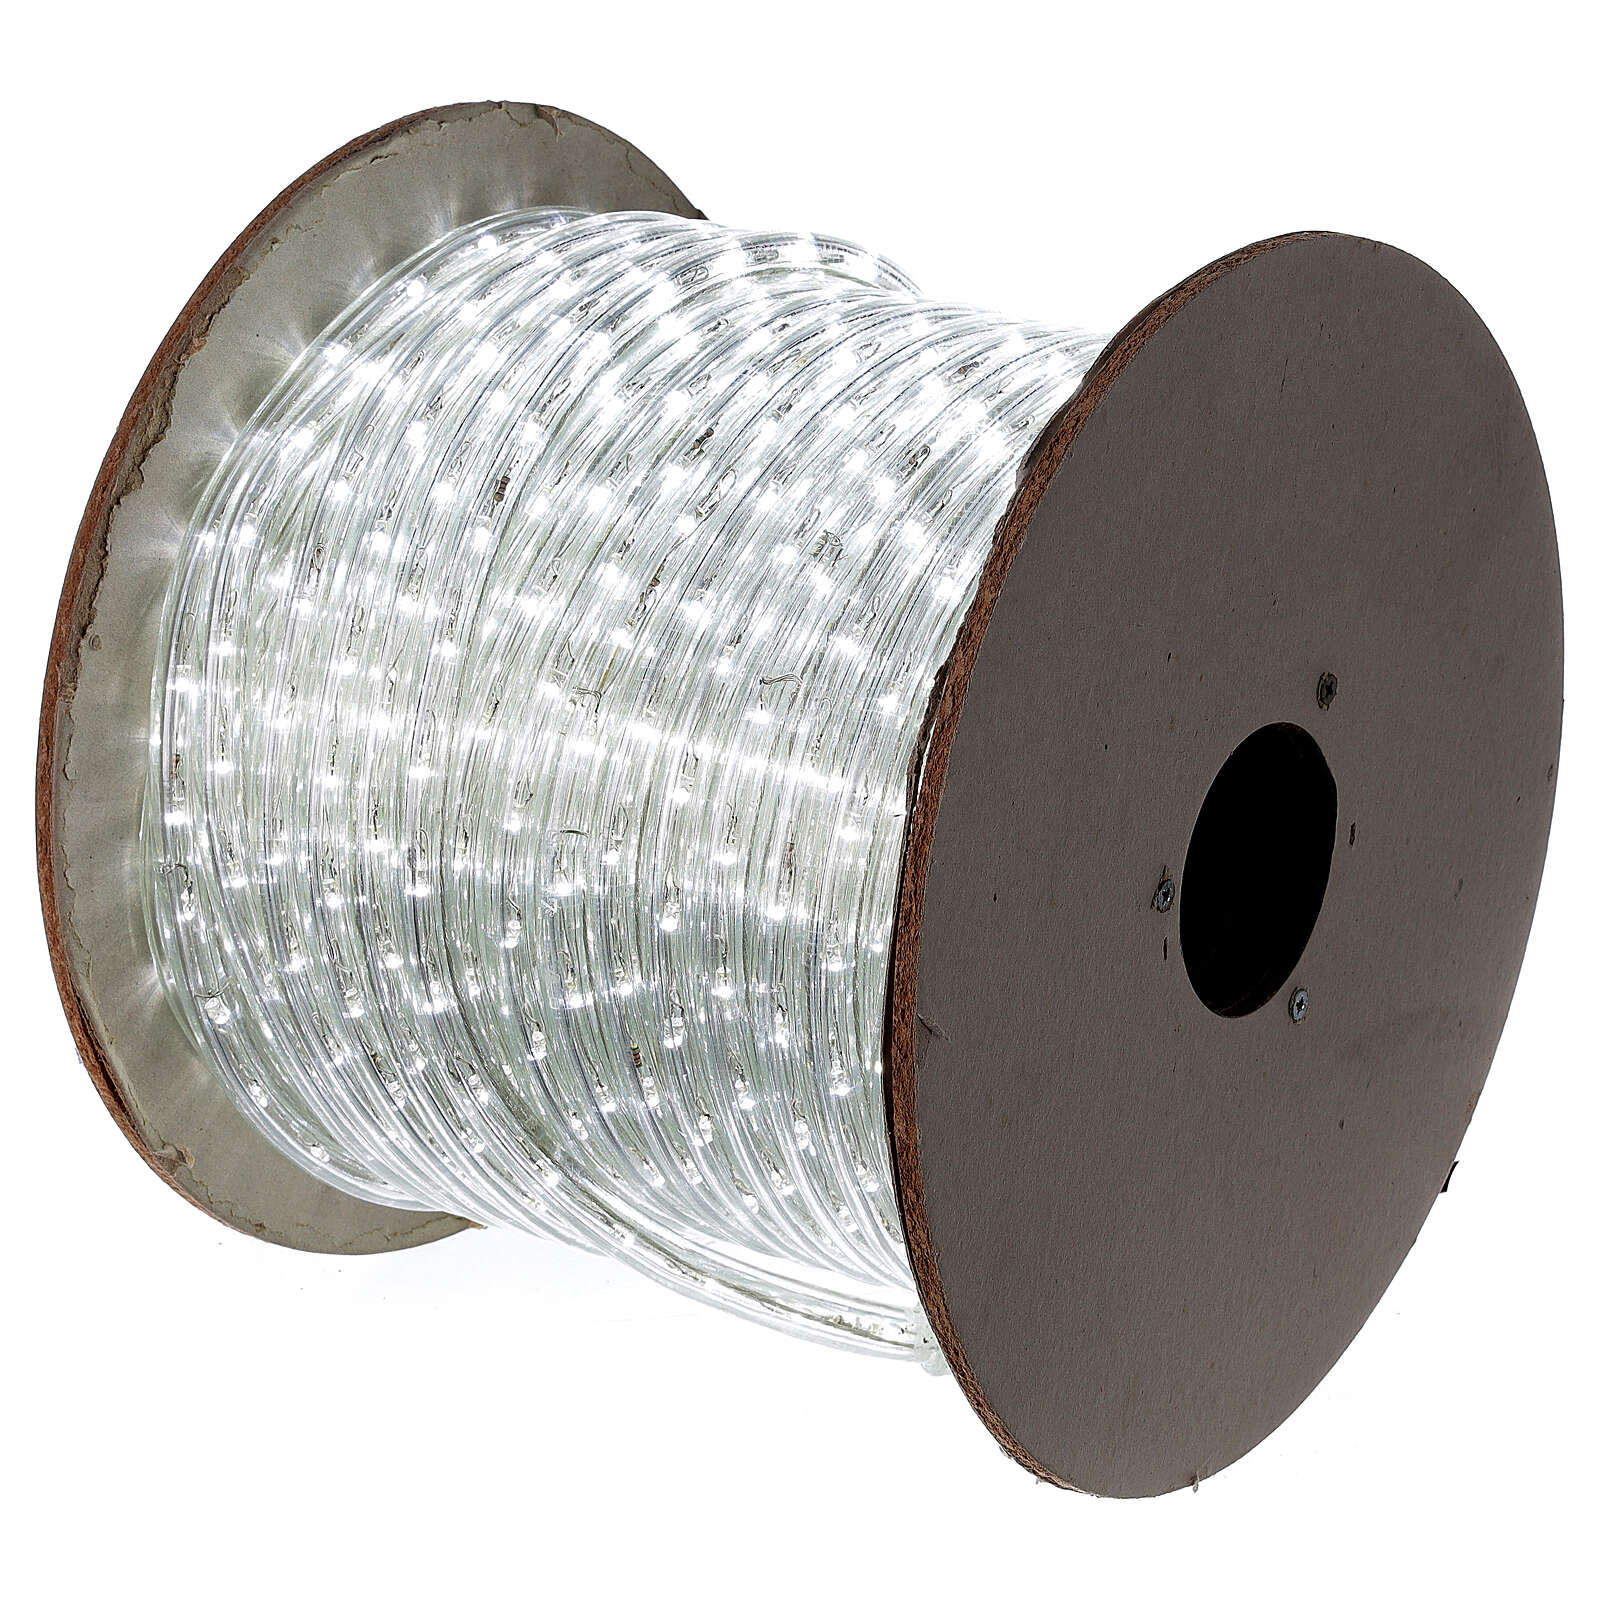 LED rope light PROFESSIONAL 44 m 2 wires LEDs cool white OUTDOOR 3